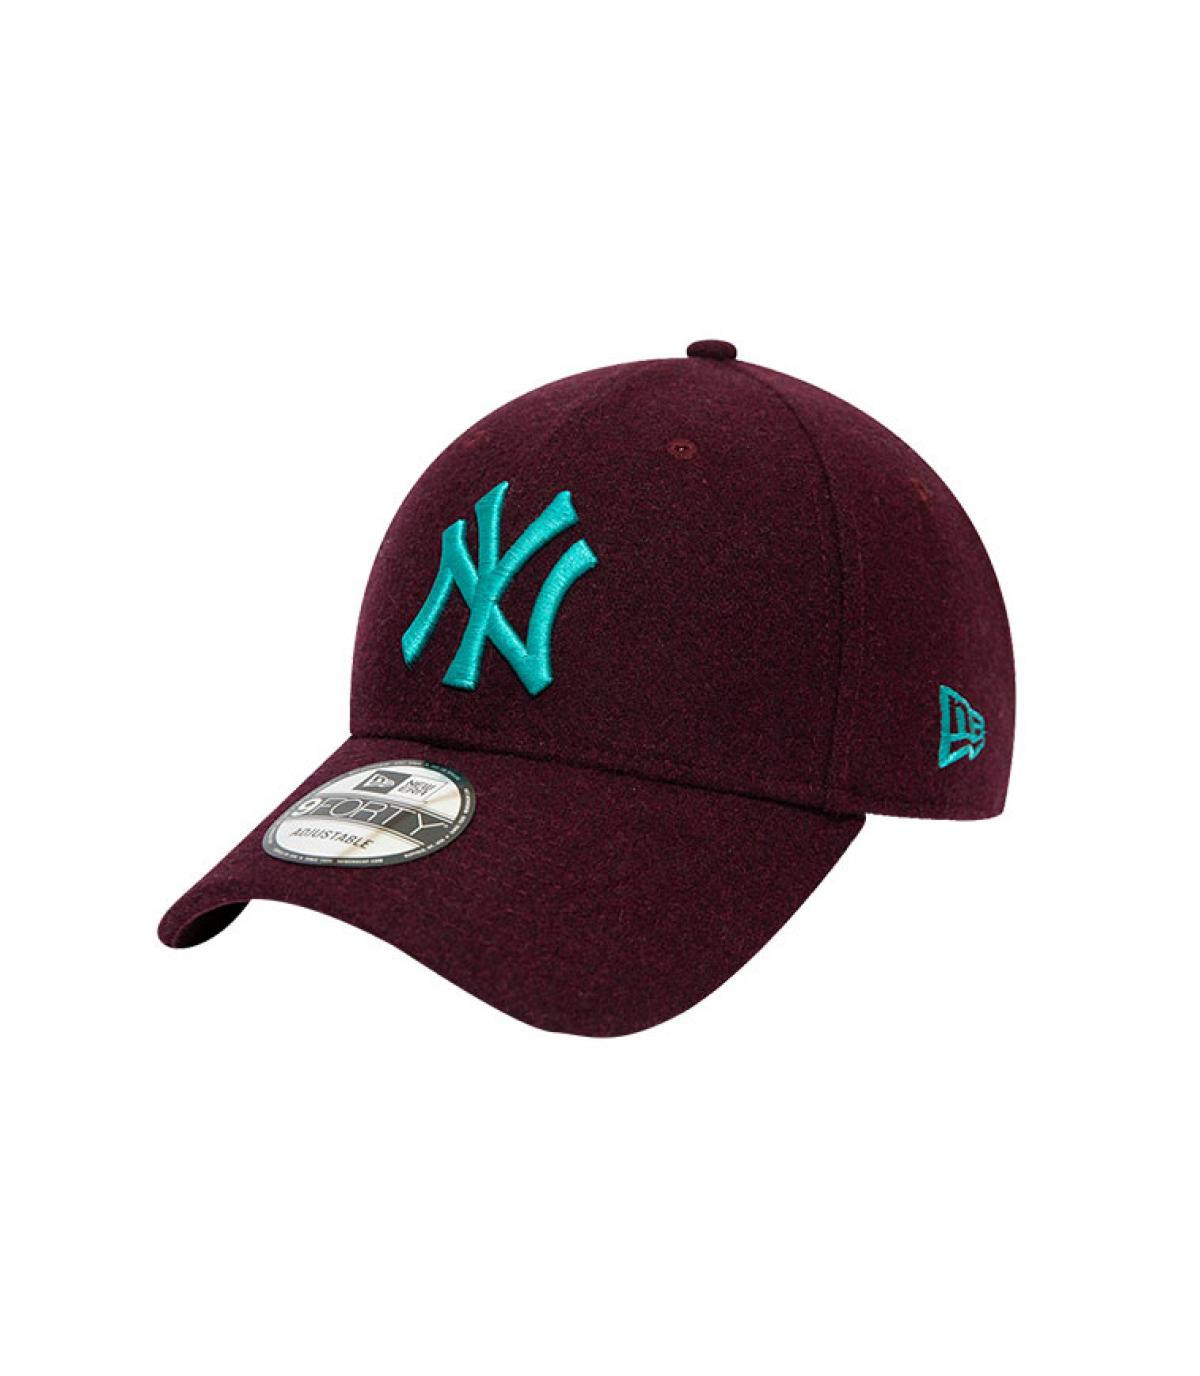 Détails Casquette MLB Melton NY 940 graphite maroon teal - image 2